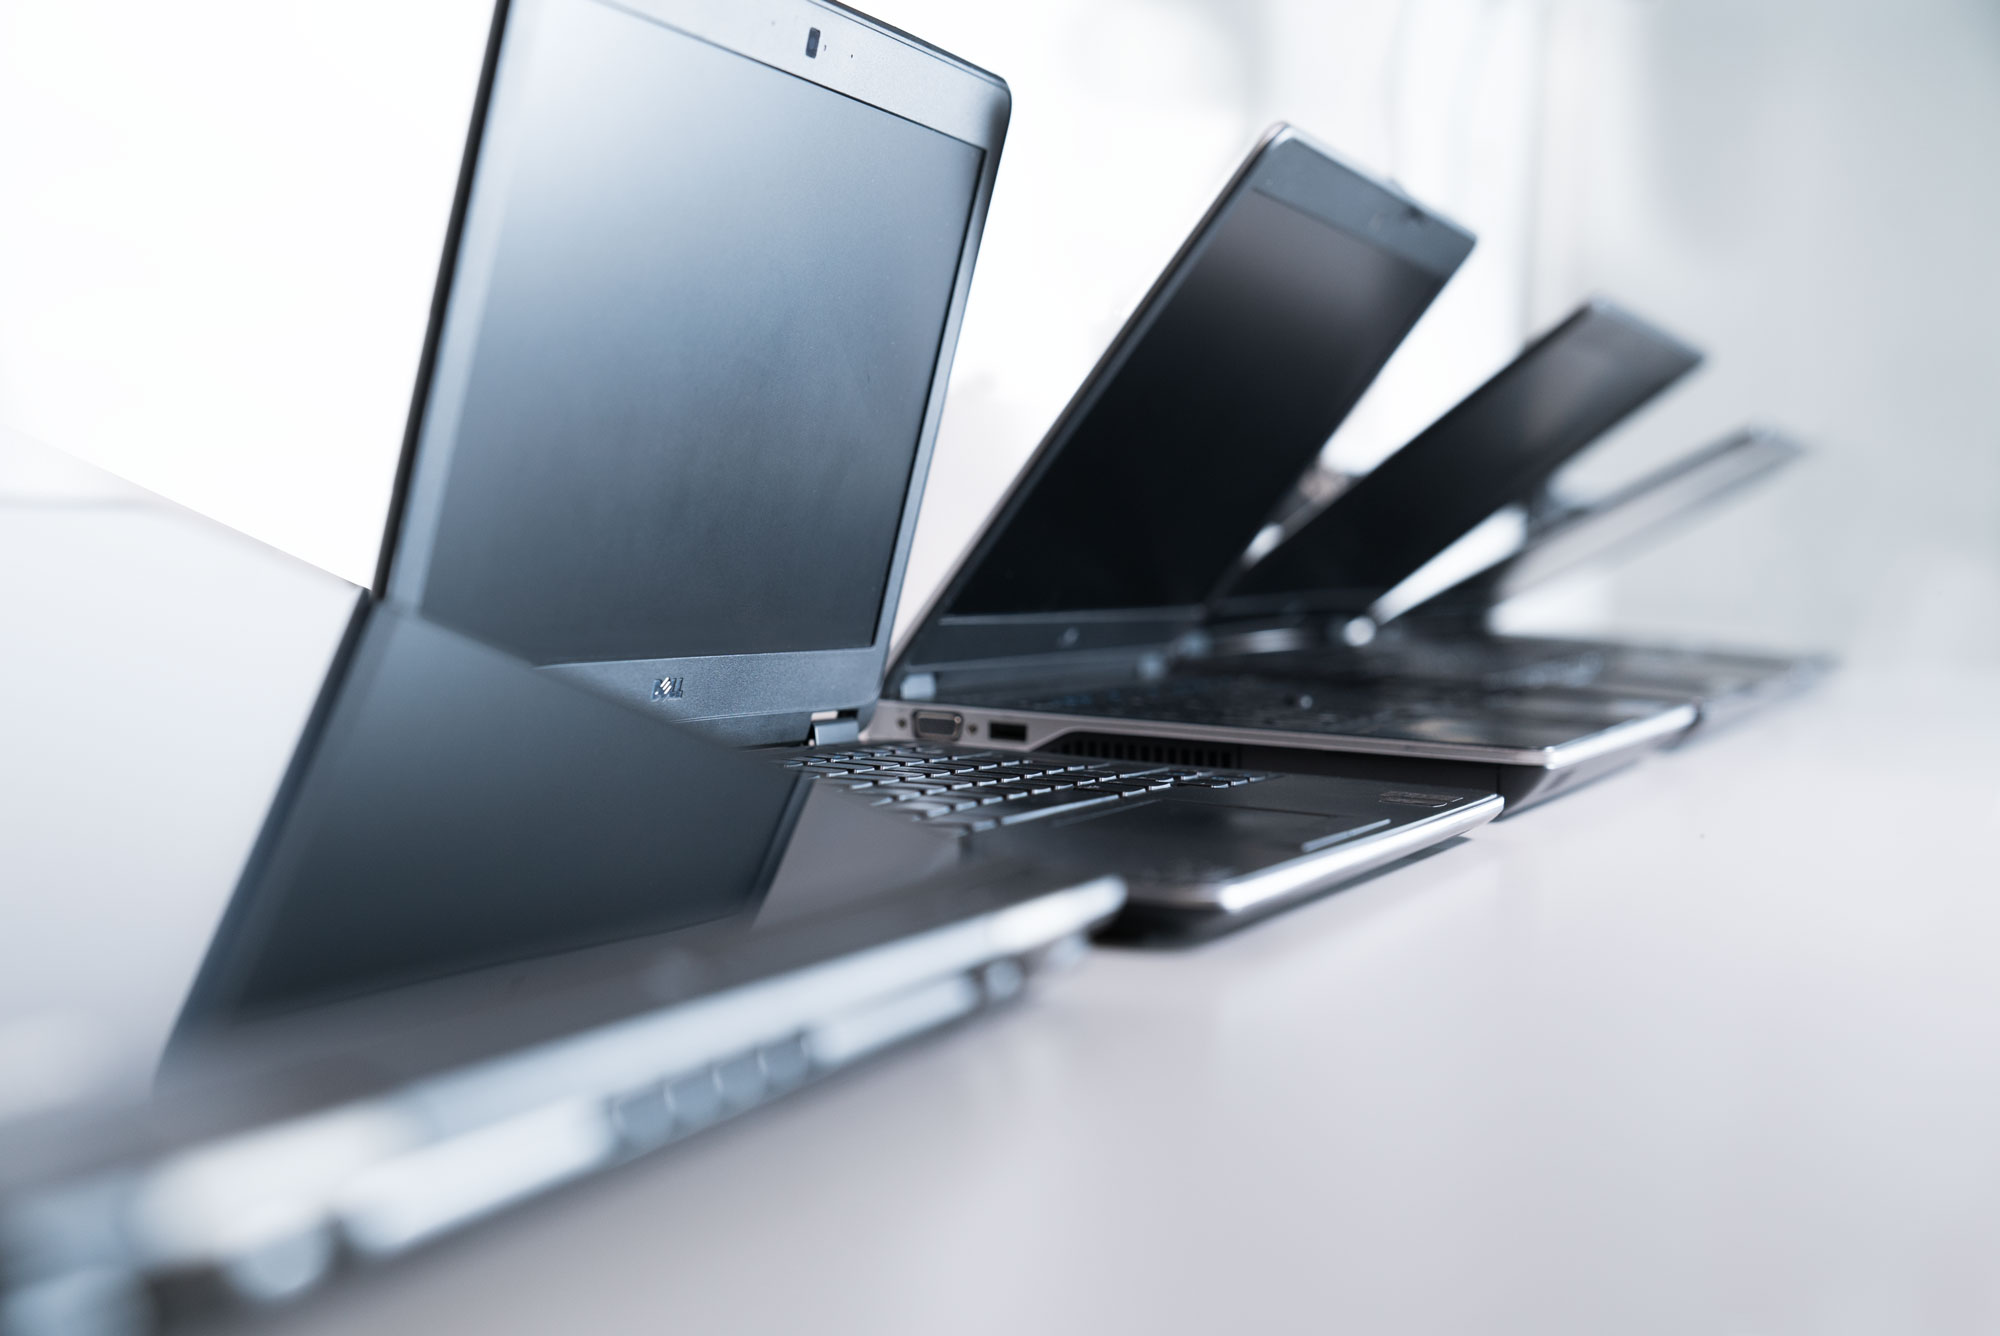 refurbished notebooks - refurbished laptops